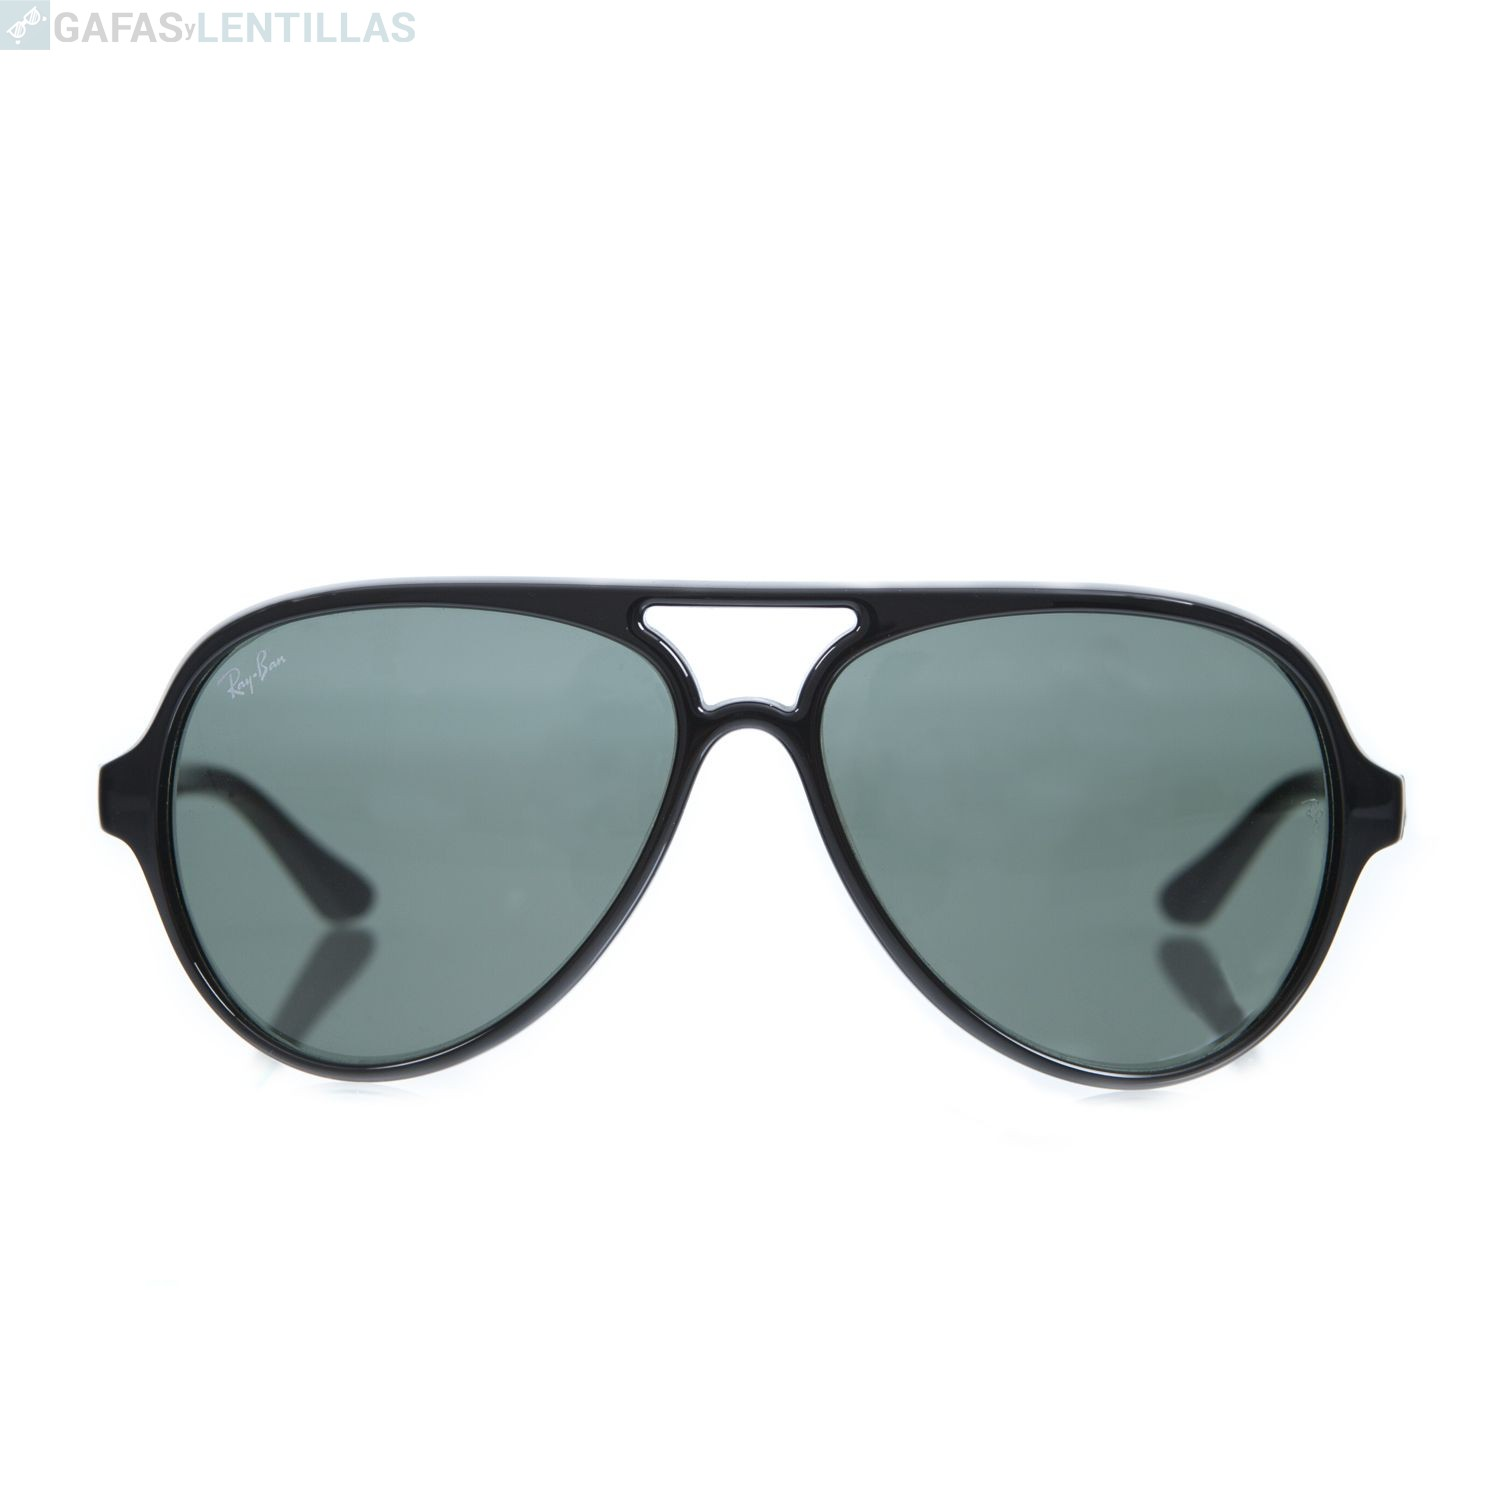 5aa9f94001 ... norway gafas de sol unisex ray ban 4125. precios outlet. e727b ea4be